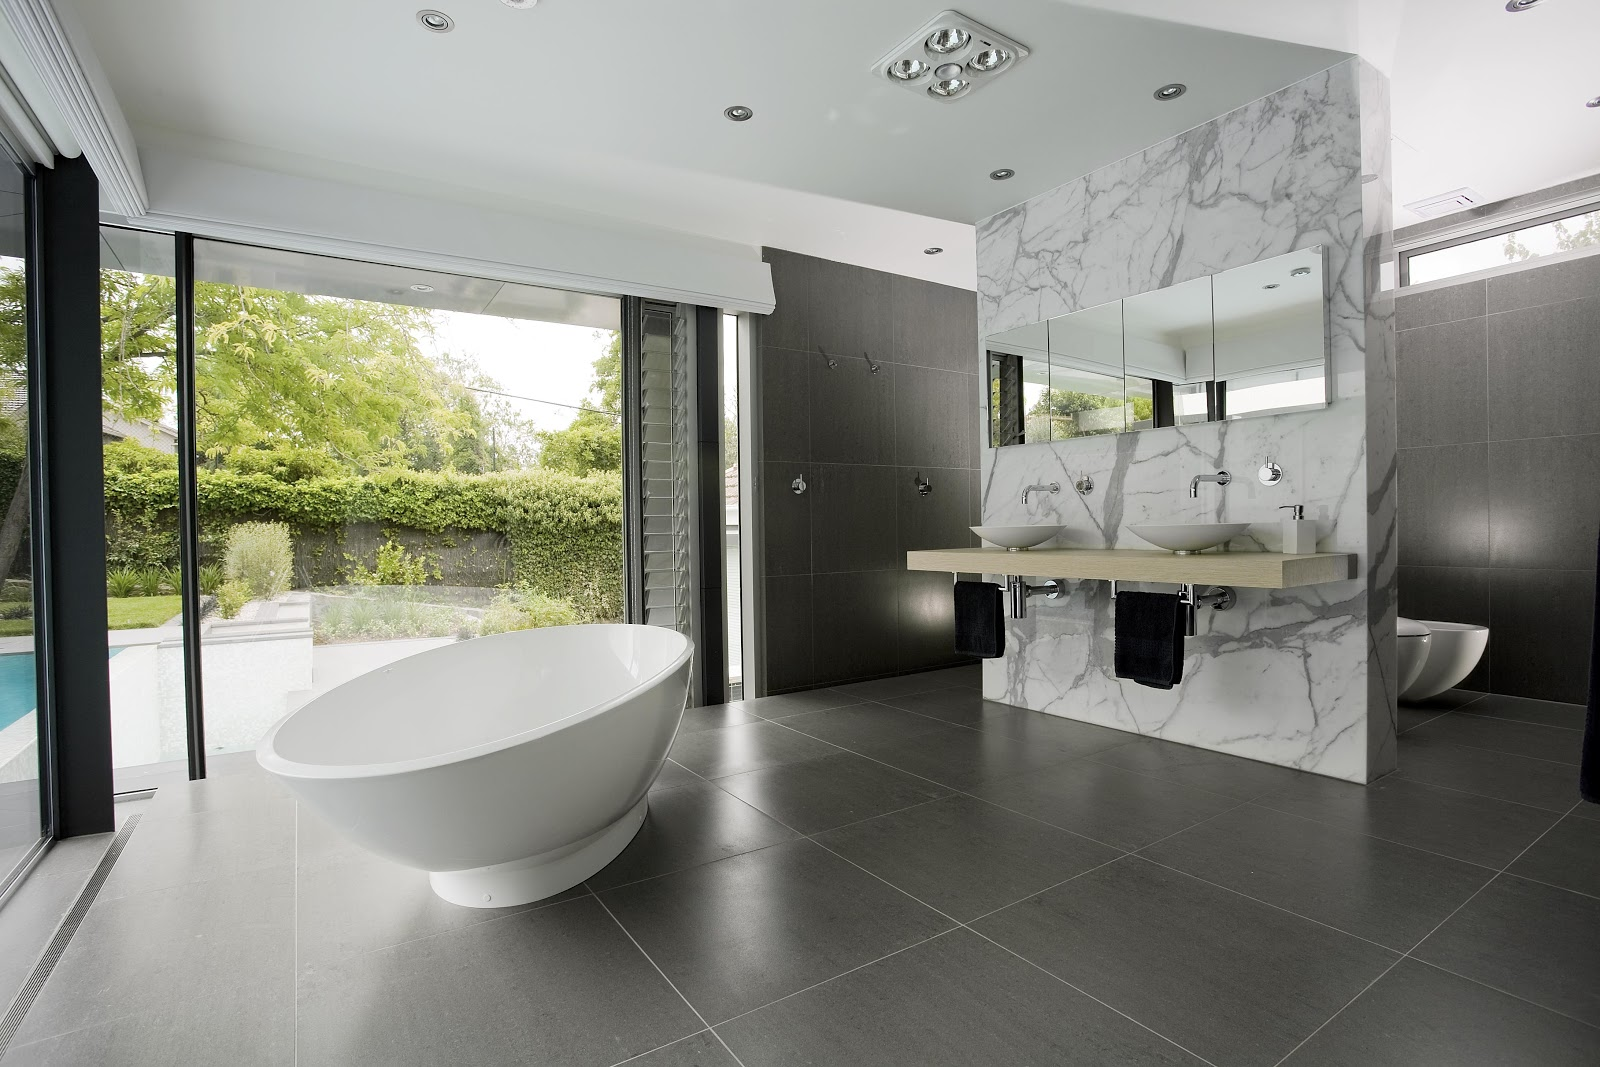 Minosa modern bathrooms the search for something different - Best bathrooms designs ...